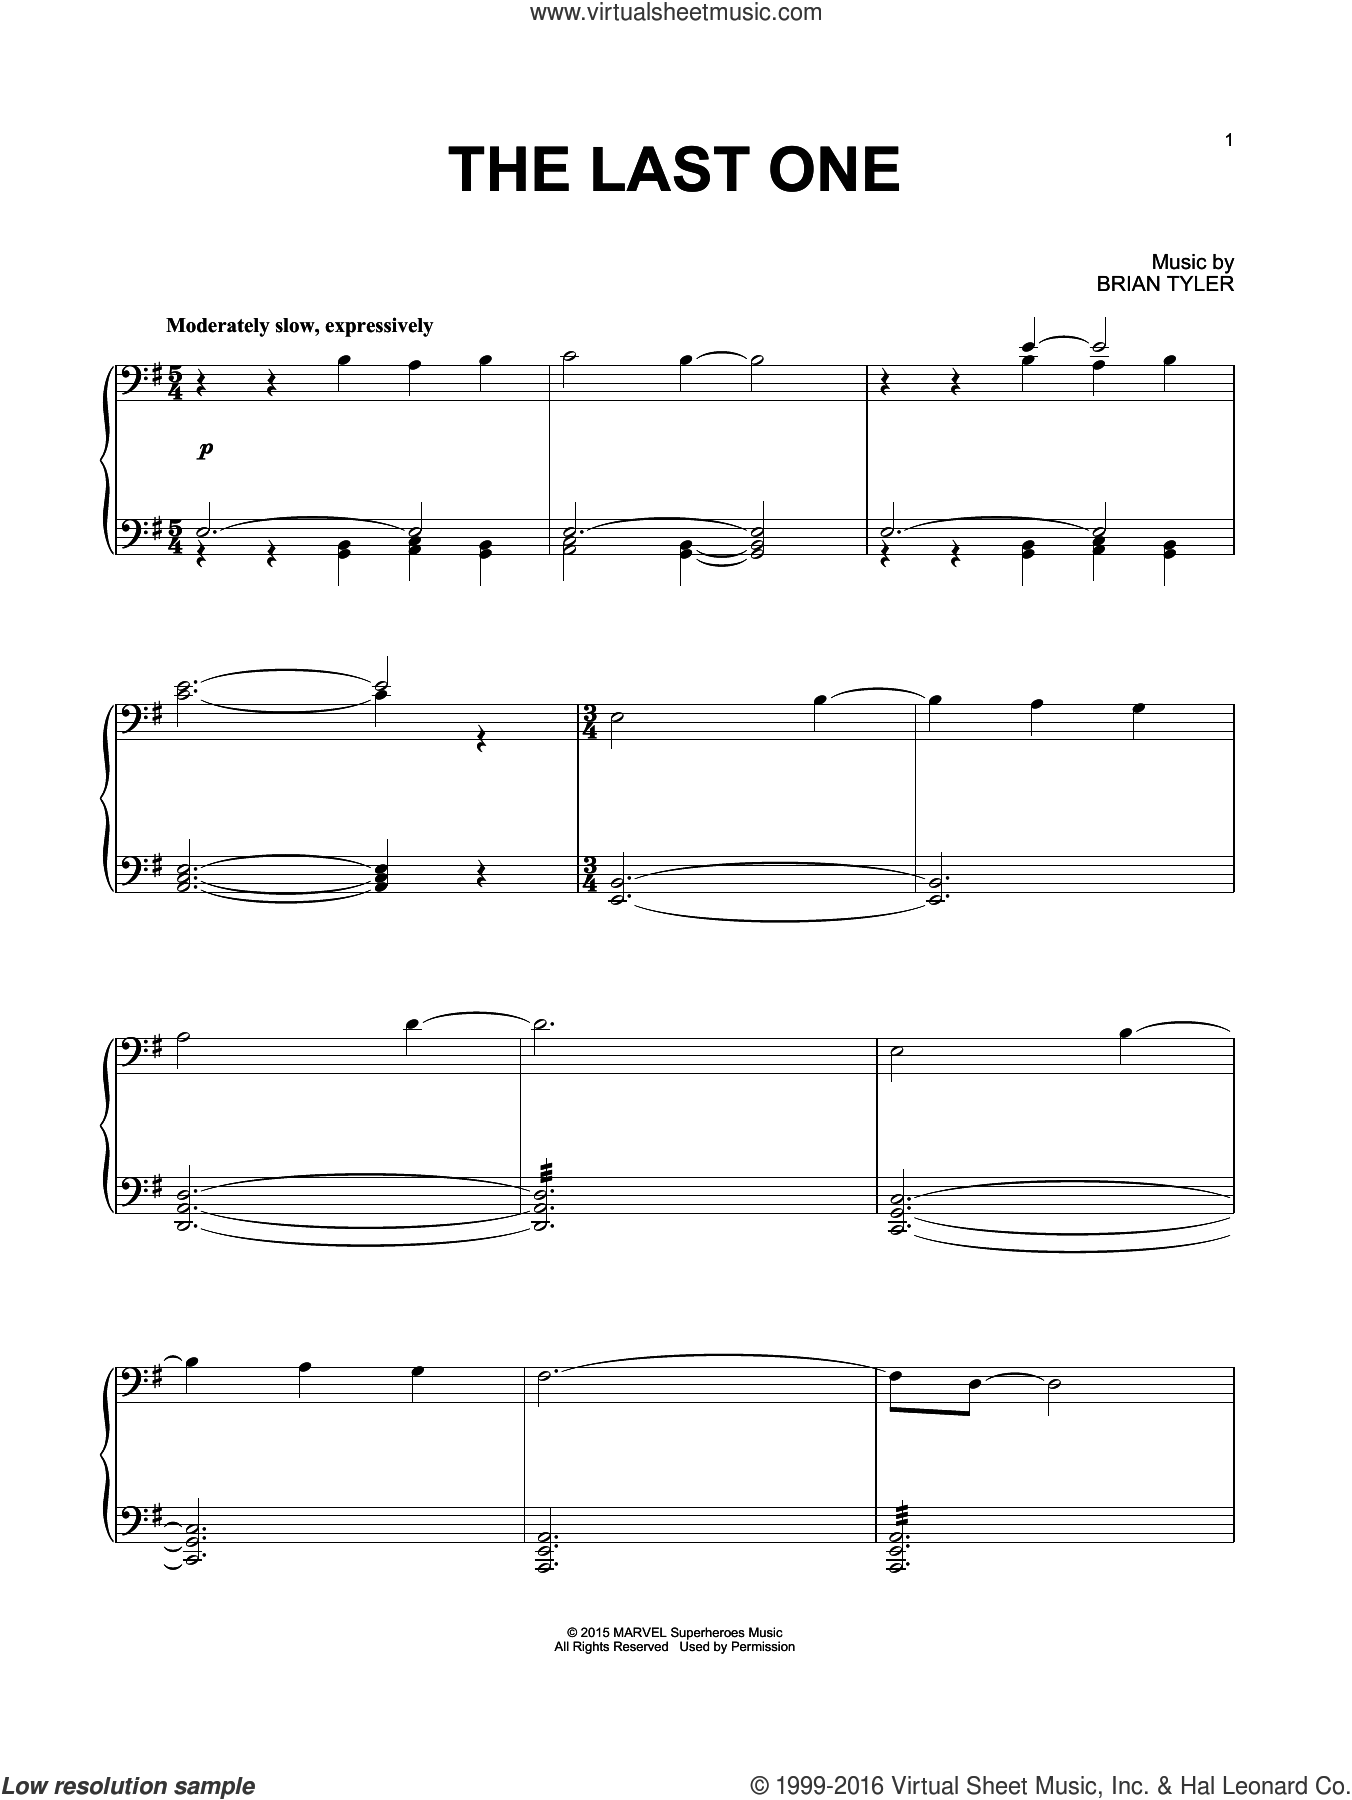 The Last One sheet music for piano solo by Brian Tyler. Score Image Preview.